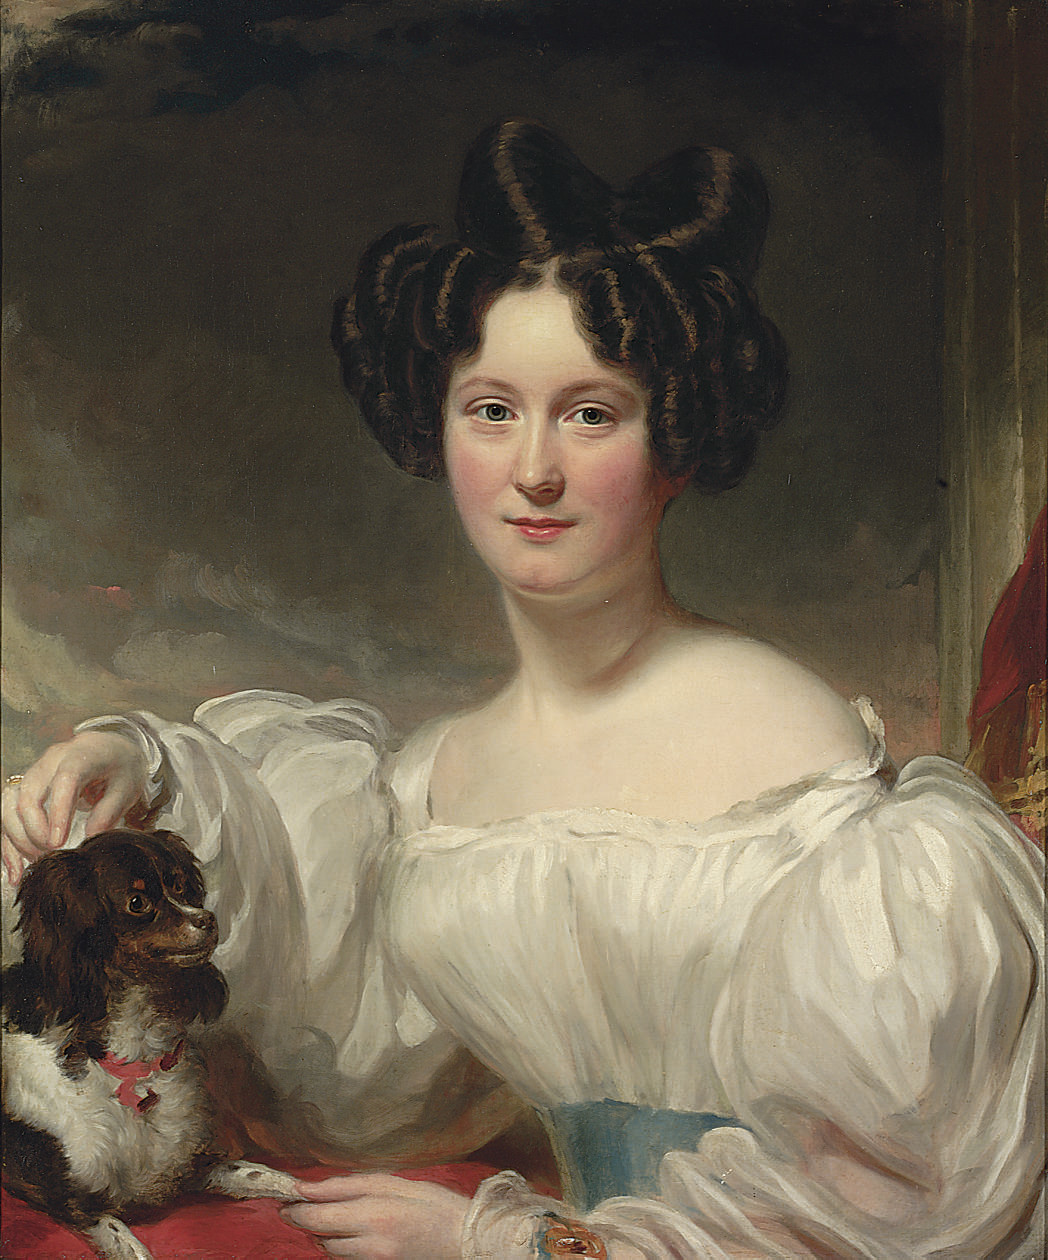 Portrait of Mary Aston Walker, née Hoggart (b.1809), half-length, in a white dress, with a King Charles spaniel